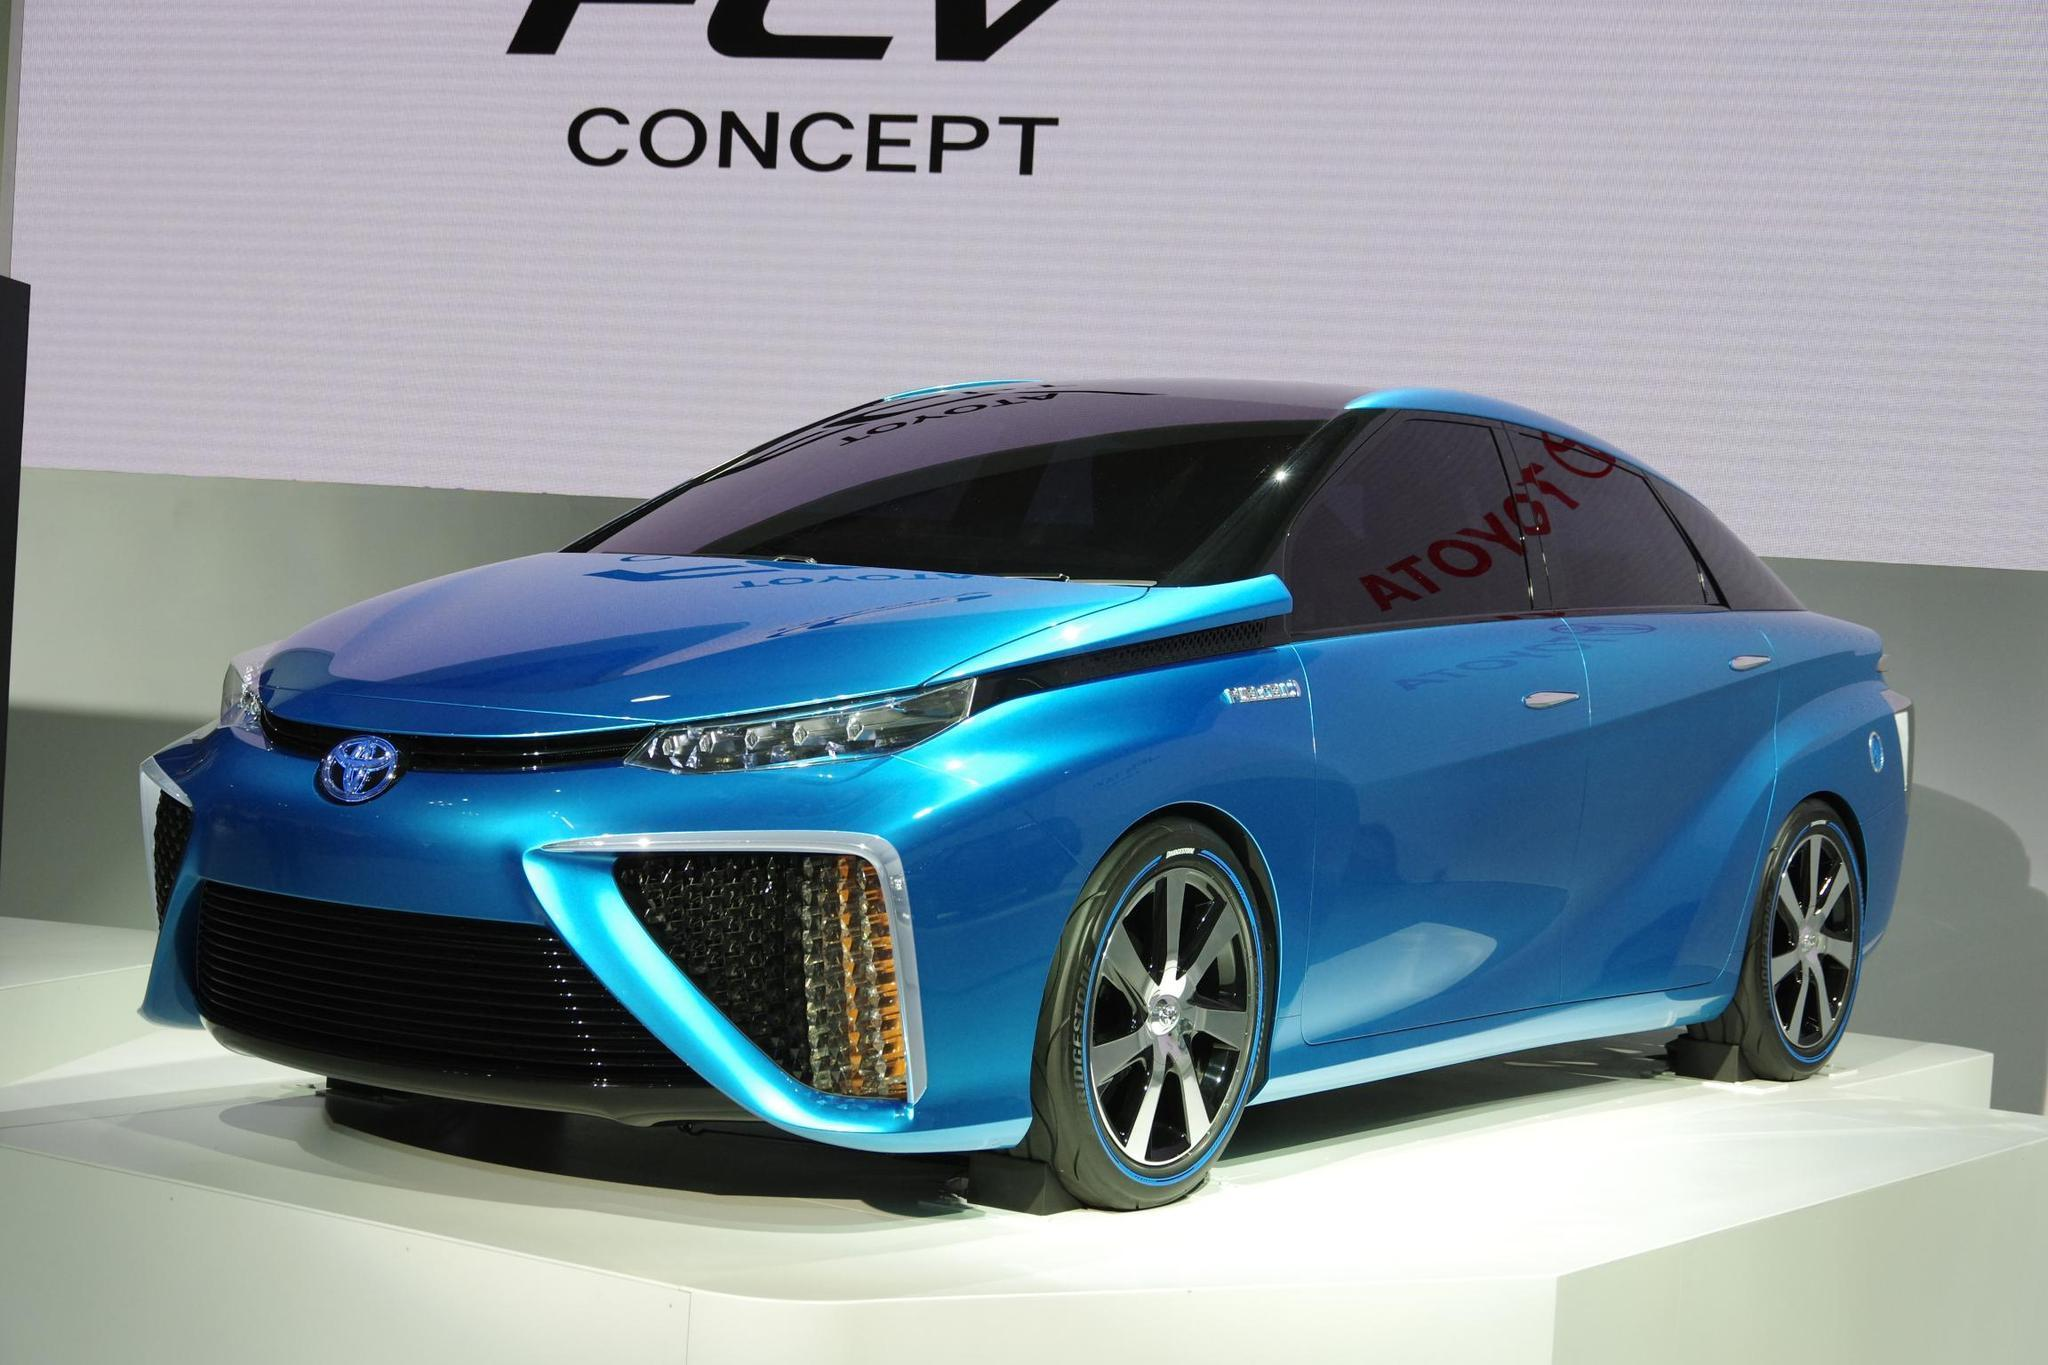 Toyota has been showing off its fuel cell concept vehicle at the international auto show circuit. The FCV is set for production and sale in 2015.